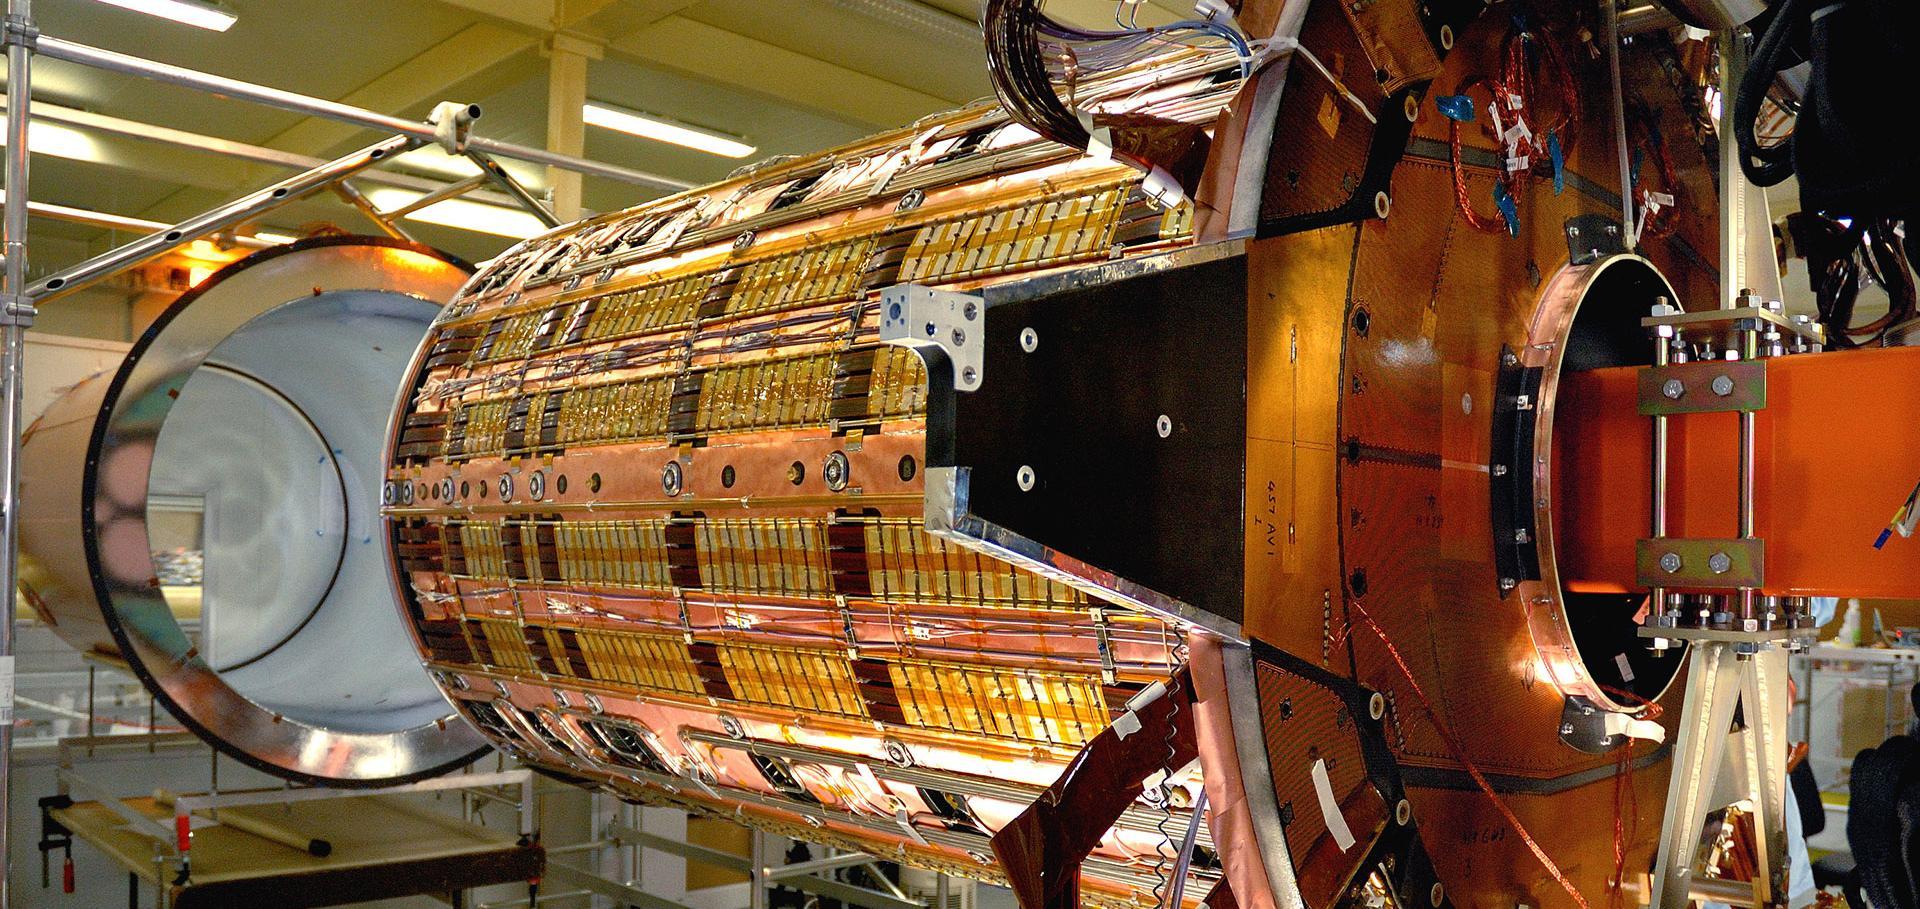 Insertion of STC into TRT at the Department of Physics, Oxford